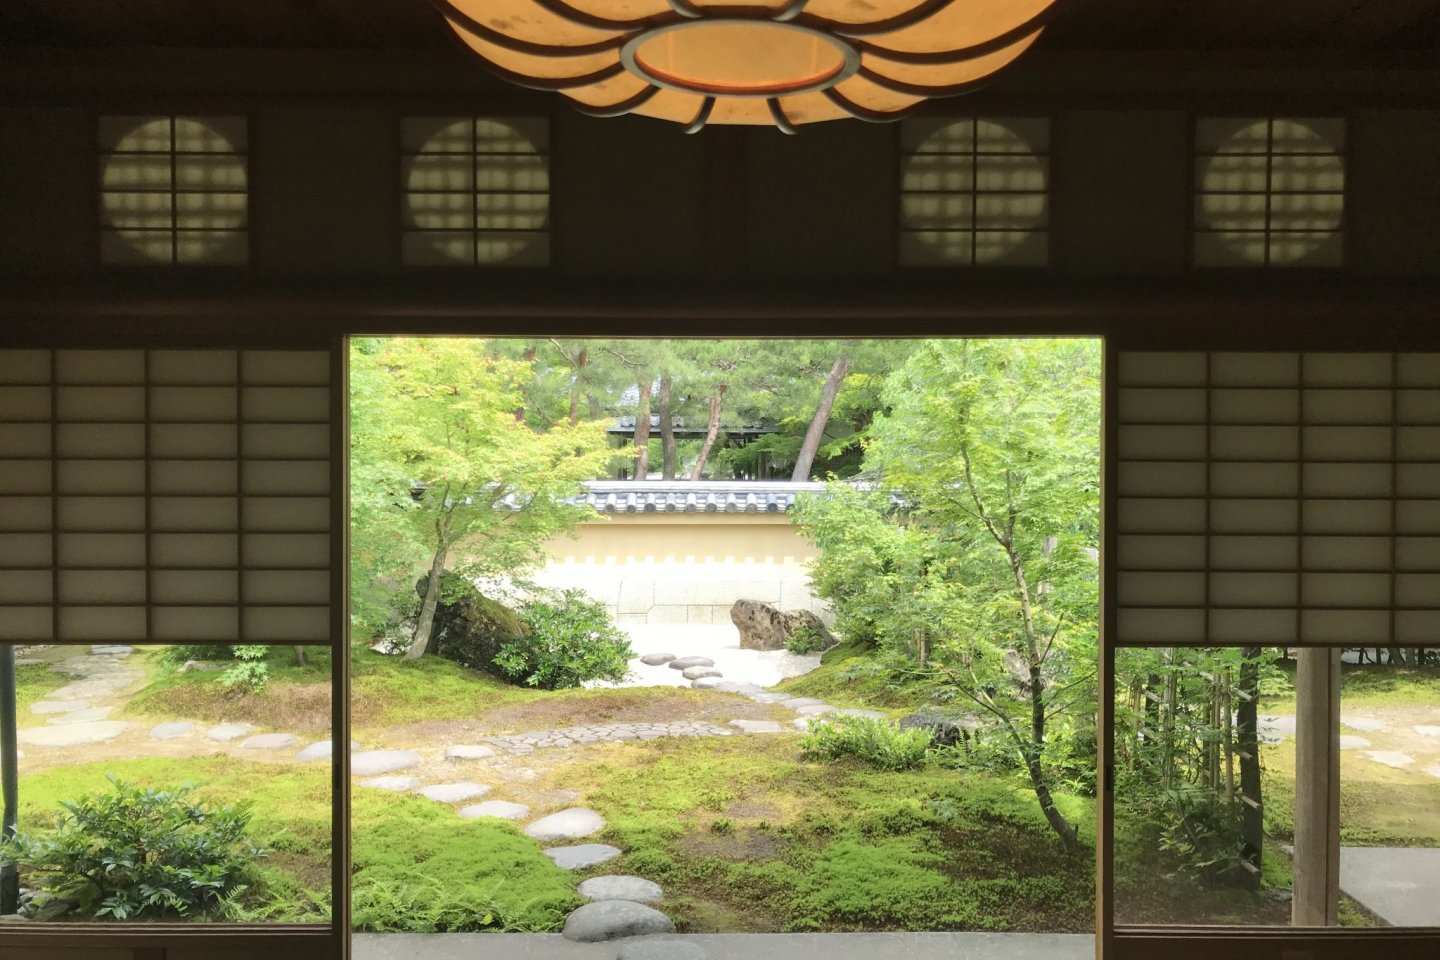 From the inside of the Juryu-an Teahouse, looking out